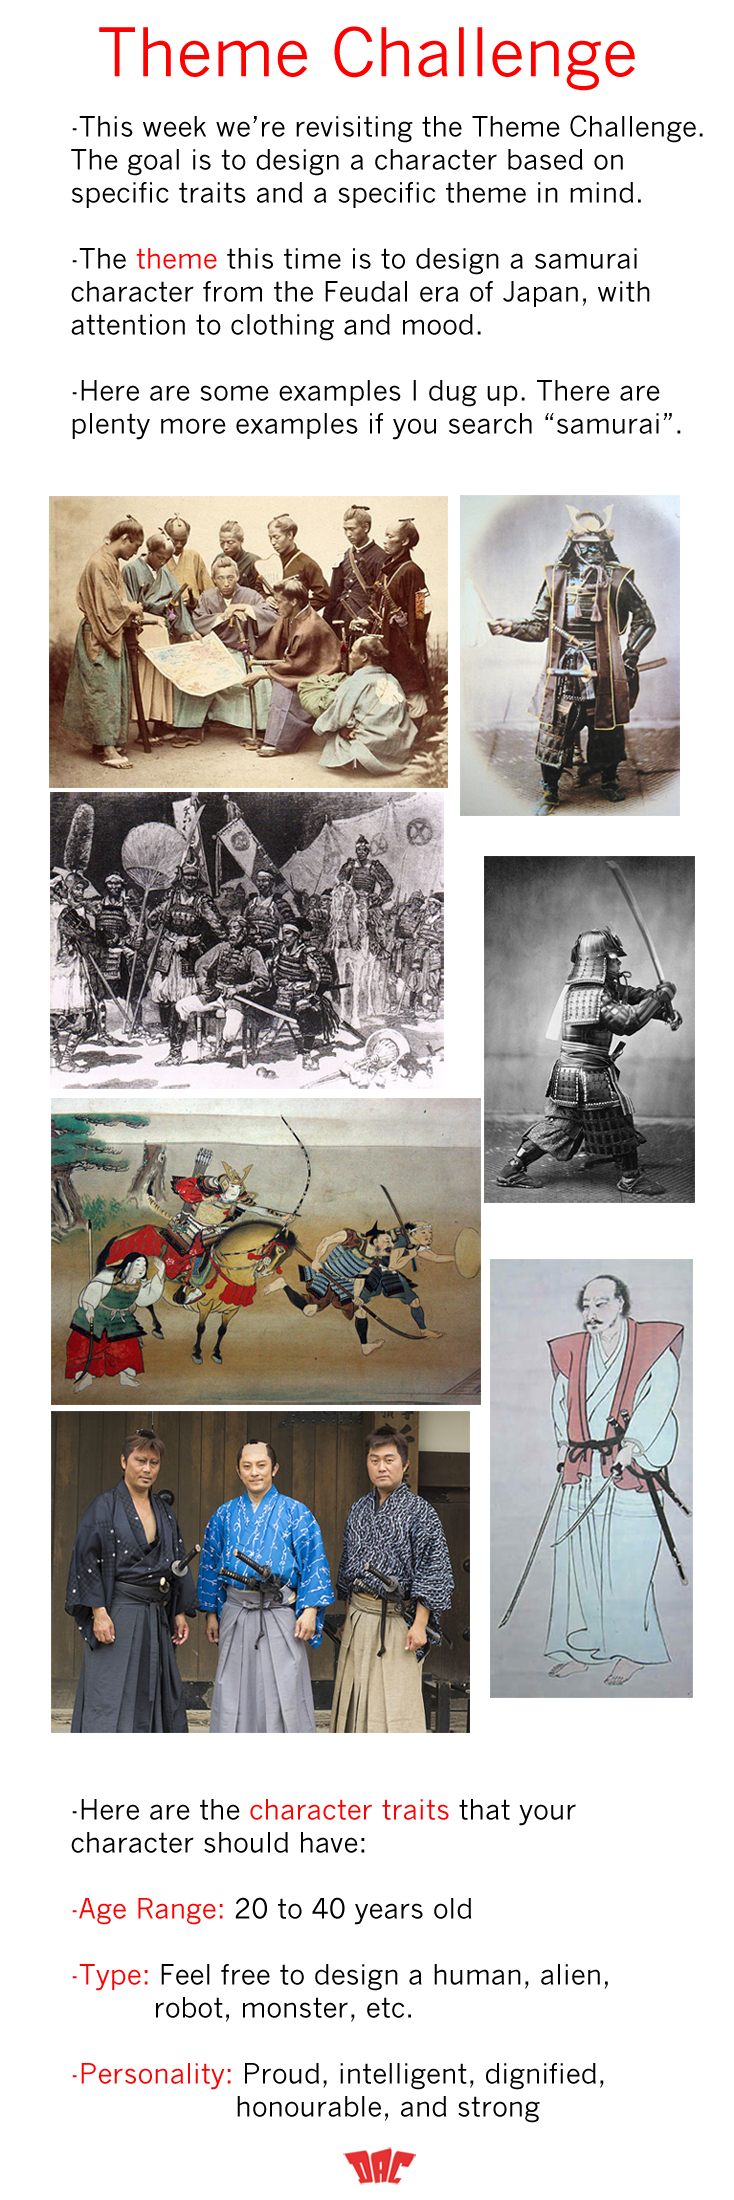 Character Design Challenge Themes : Design a character theme challenge samurai by